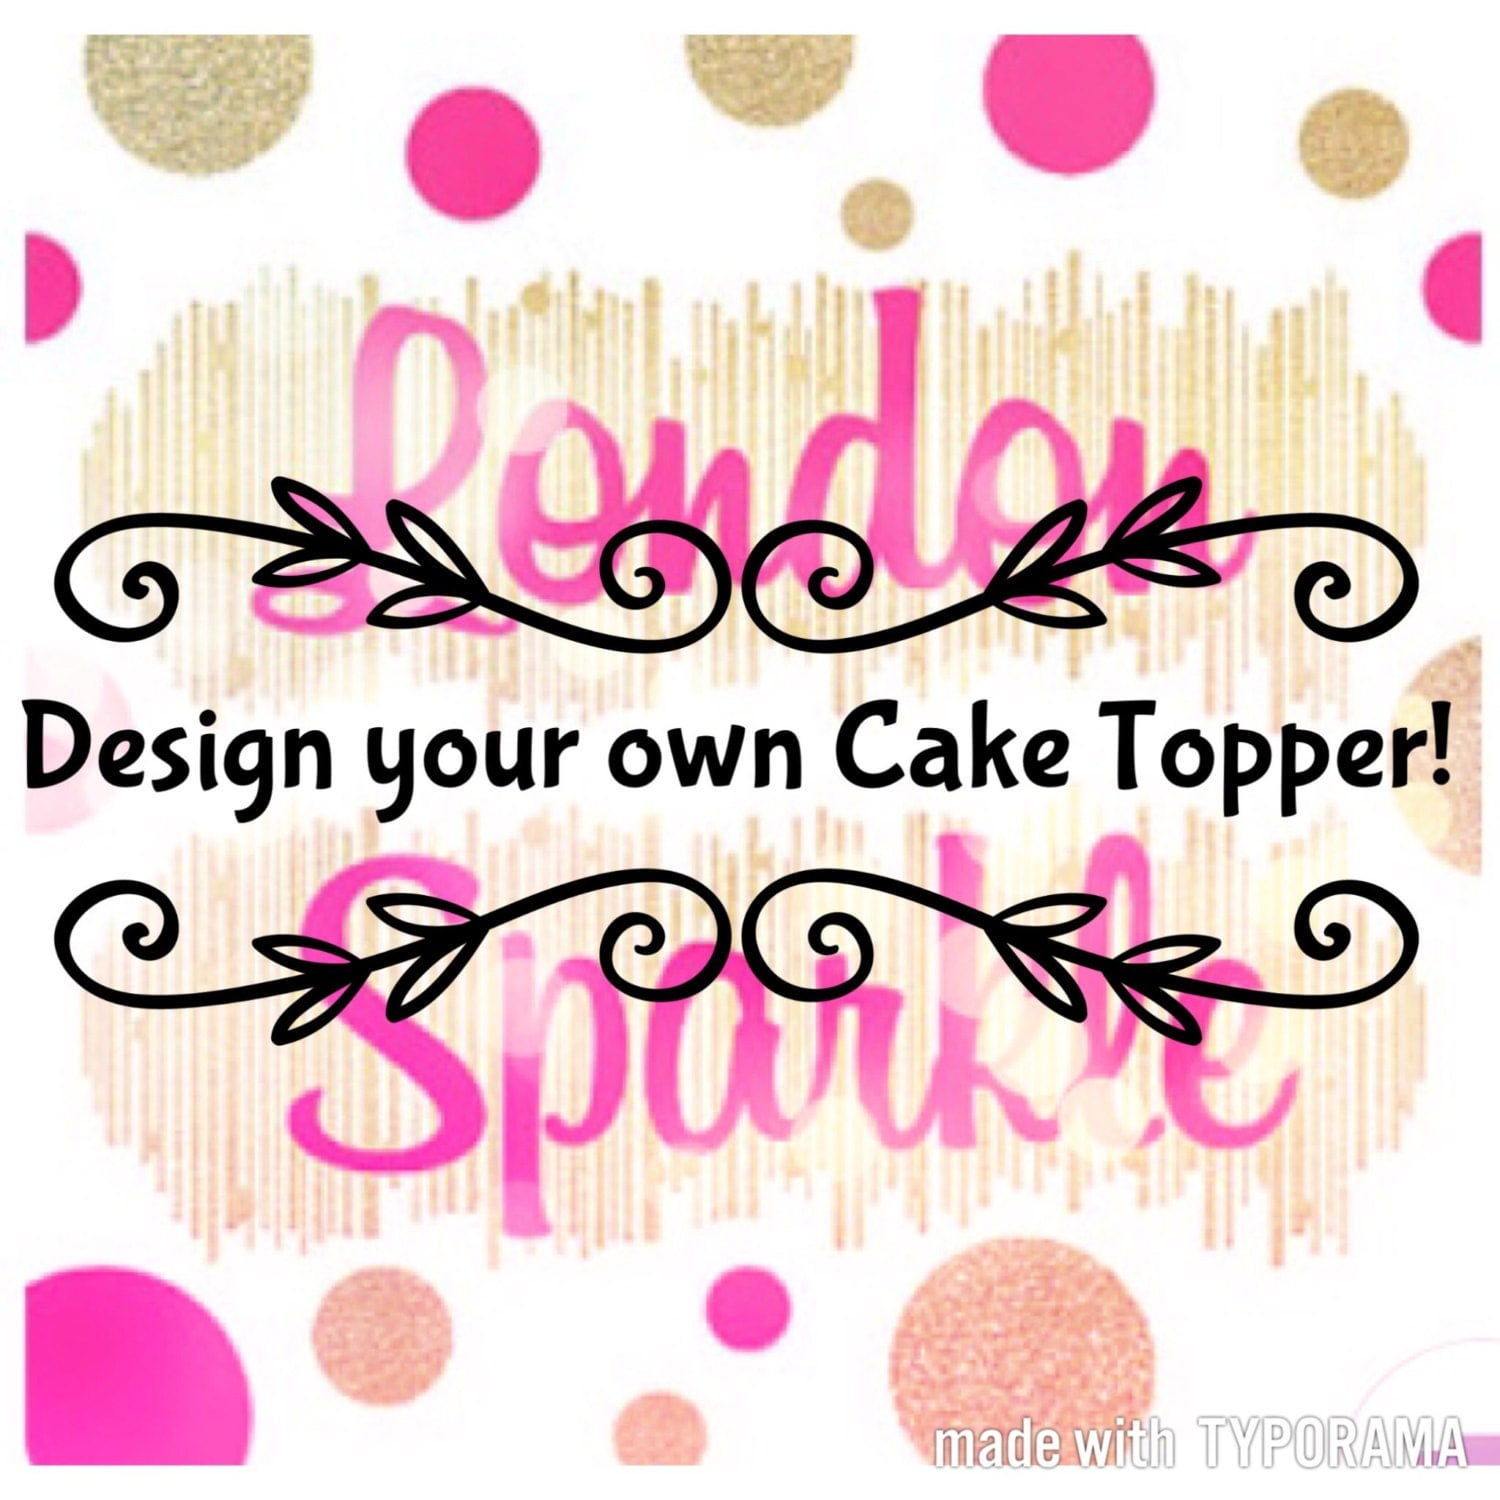 Cake Topper Design Your Own : Design your own topper Unique & Custom cake toppers have